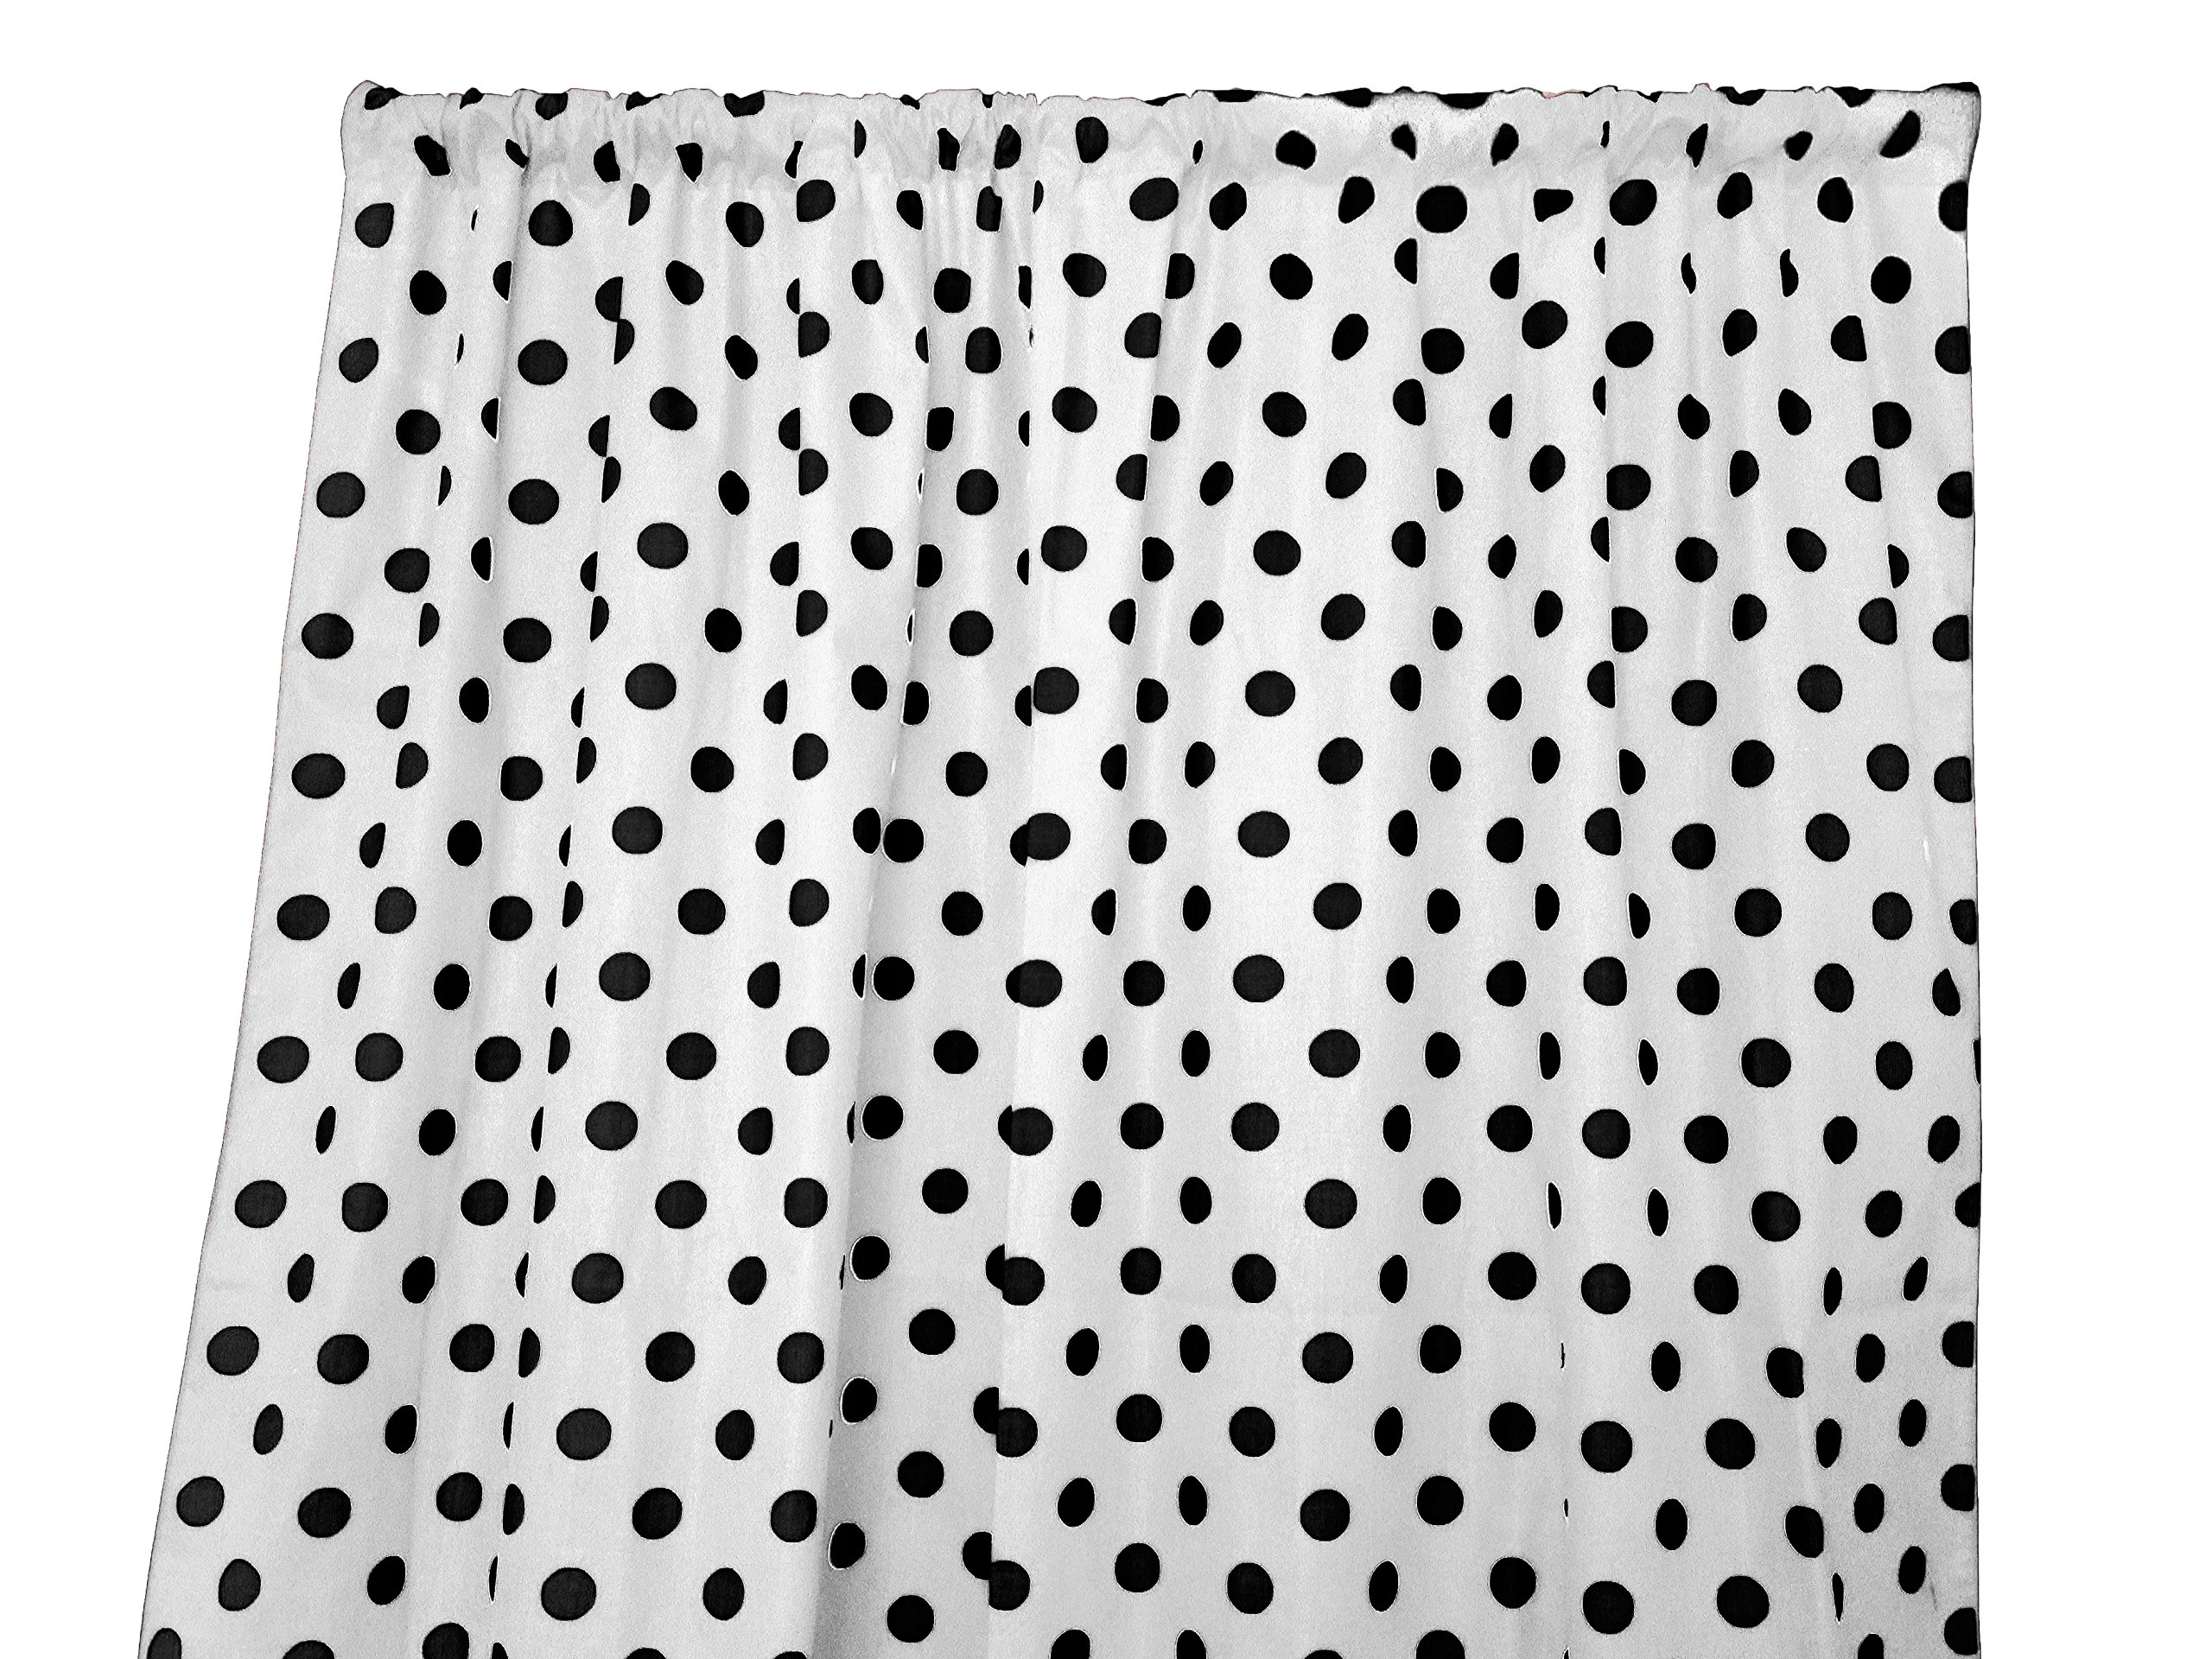 Zen Creative Designs Polka Dots on White Cotton Curtain Panel Perfect for Bed Room Window, Children's Room Window, Living Room Window Decor (Black Dots, 72'' Tall x 58'' Wide) by Zen Creative Designs